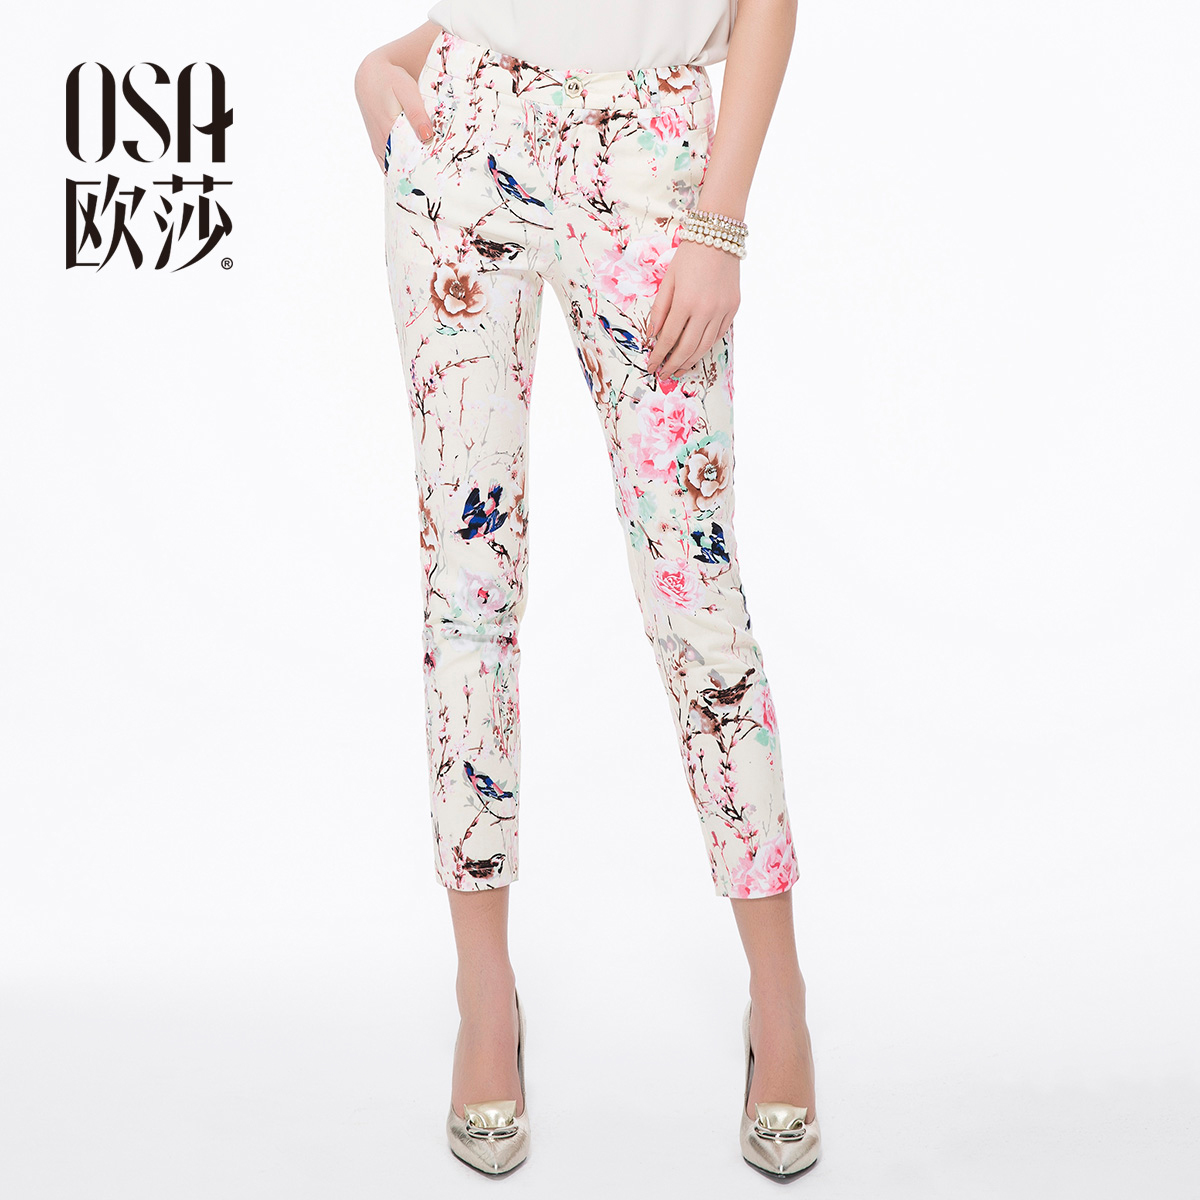 2014 Spring Summer Cotton Floral Print Casual Pencil Pants For Women Ladies Slim Jeans Skinny Straight Pants Capris SK410006(China (Mainland))